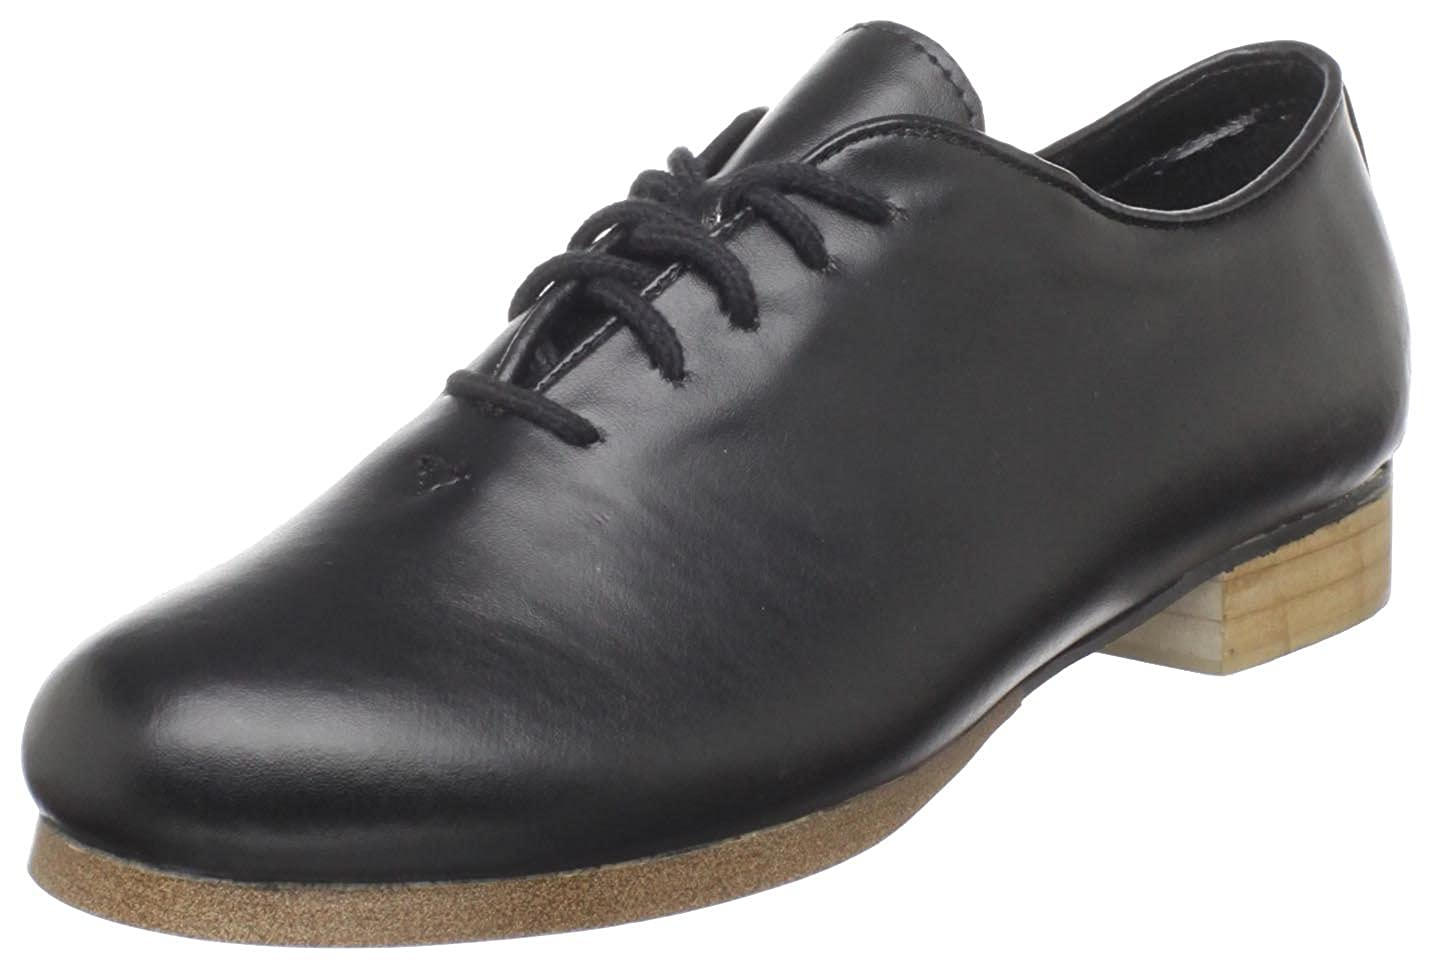 8f8bf657fc300 Dance Class Women's PCM201 Full Sole Jazz/Clogging Oxford